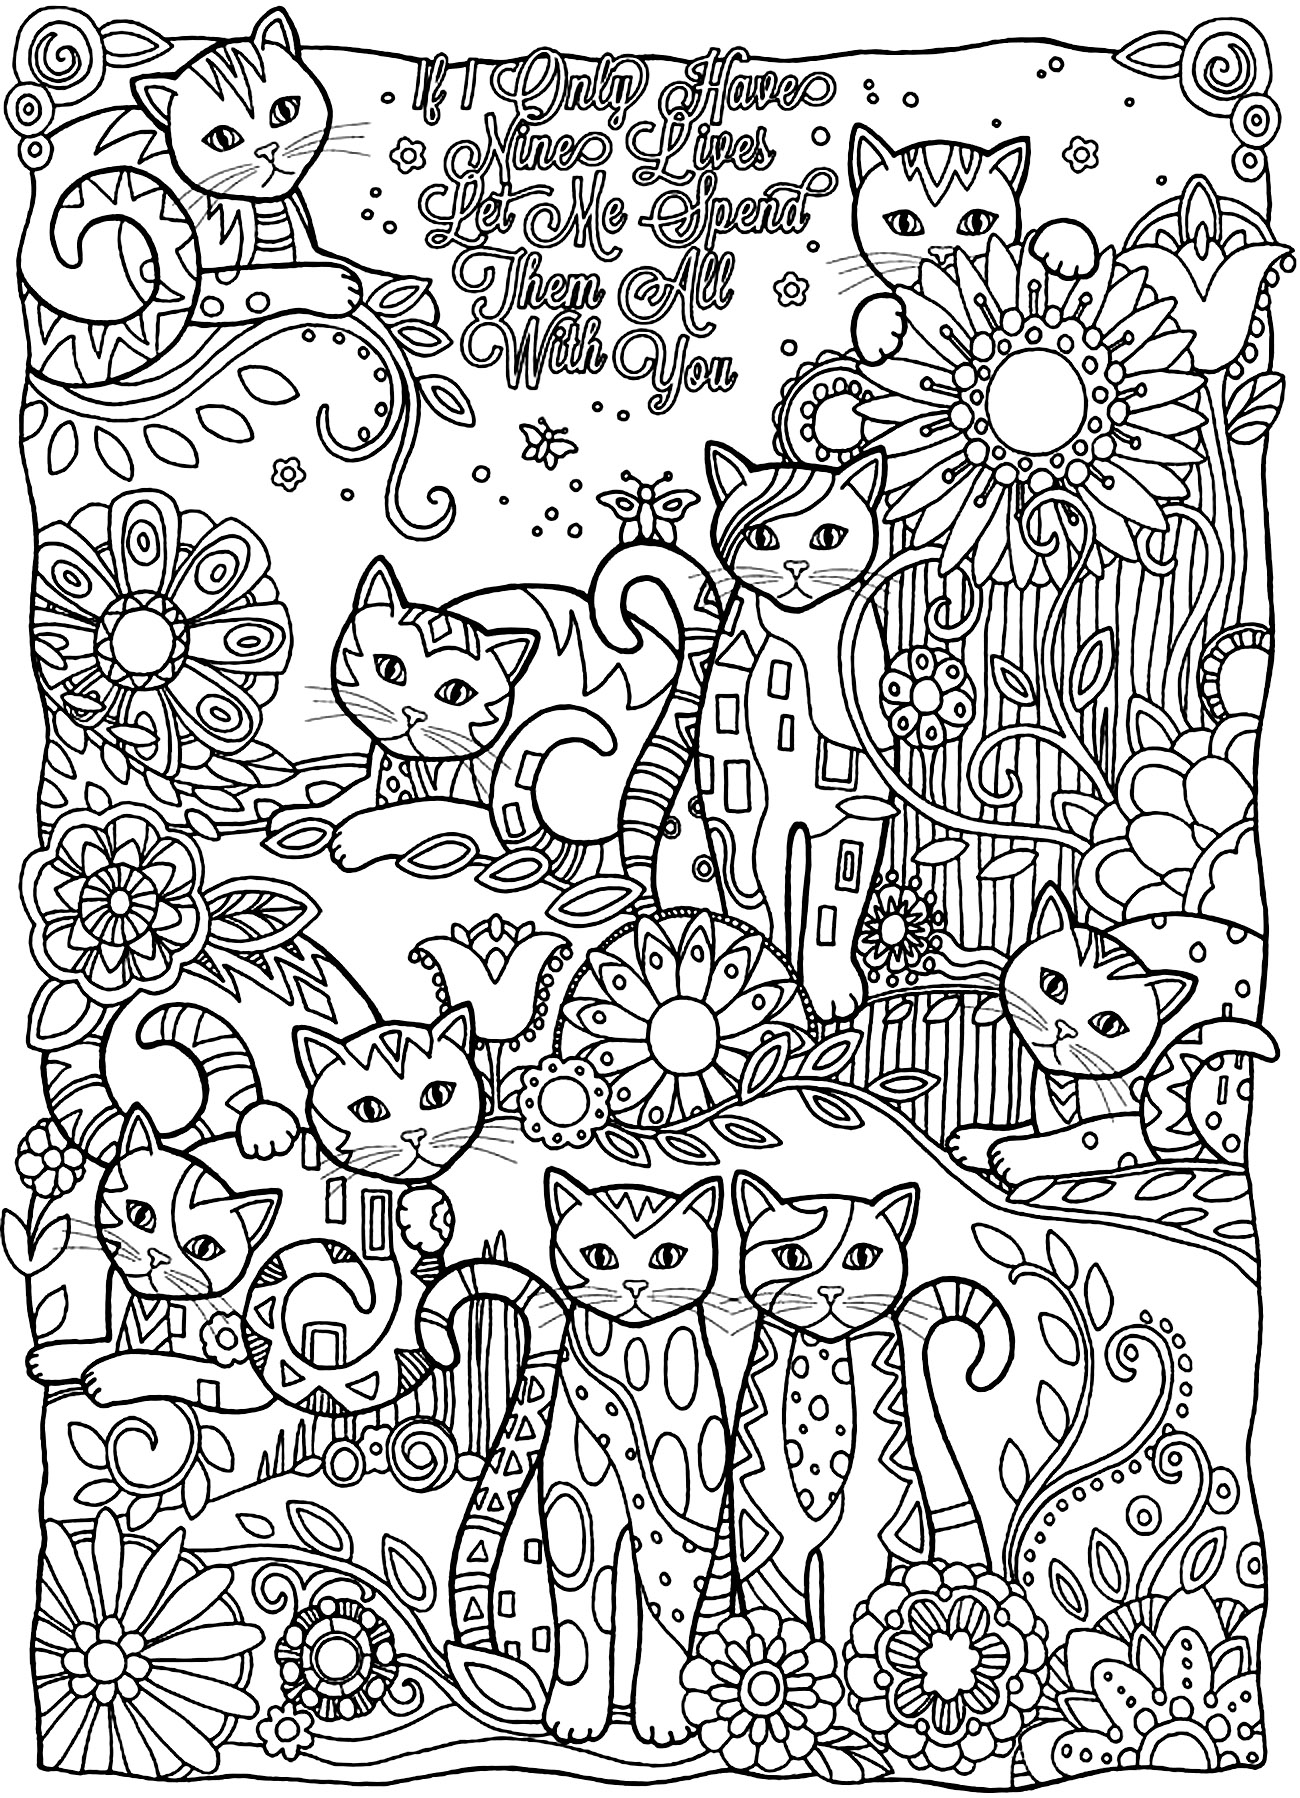 cute cats just missing for colors from the gallery animals